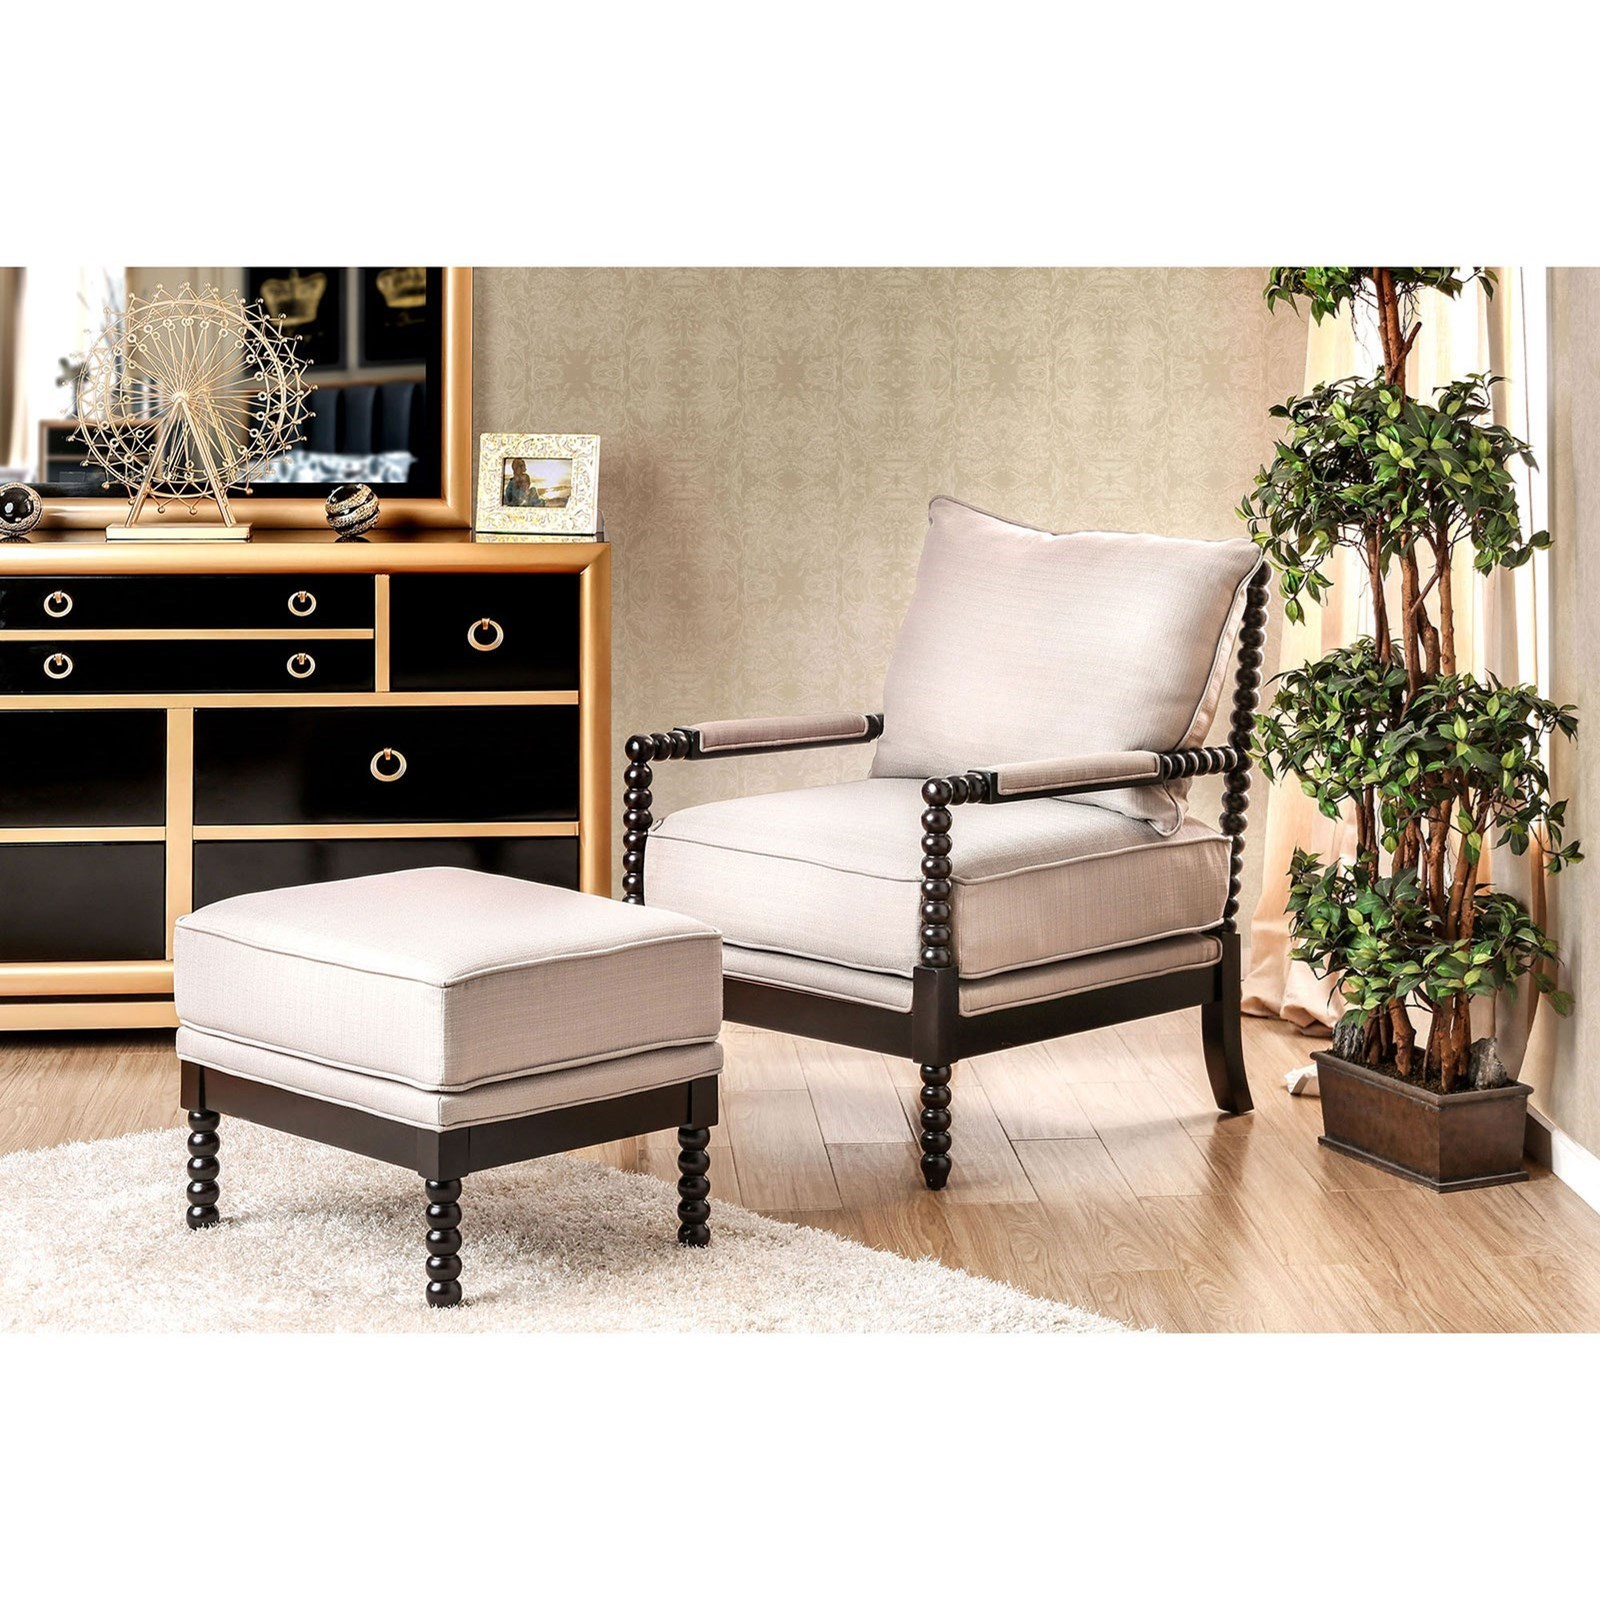 Miraculous Furniture Of America Sybil Cm Ac6140Bg Set Accent Chair And Caraccident5 Cool Chair Designs And Ideas Caraccident5Info